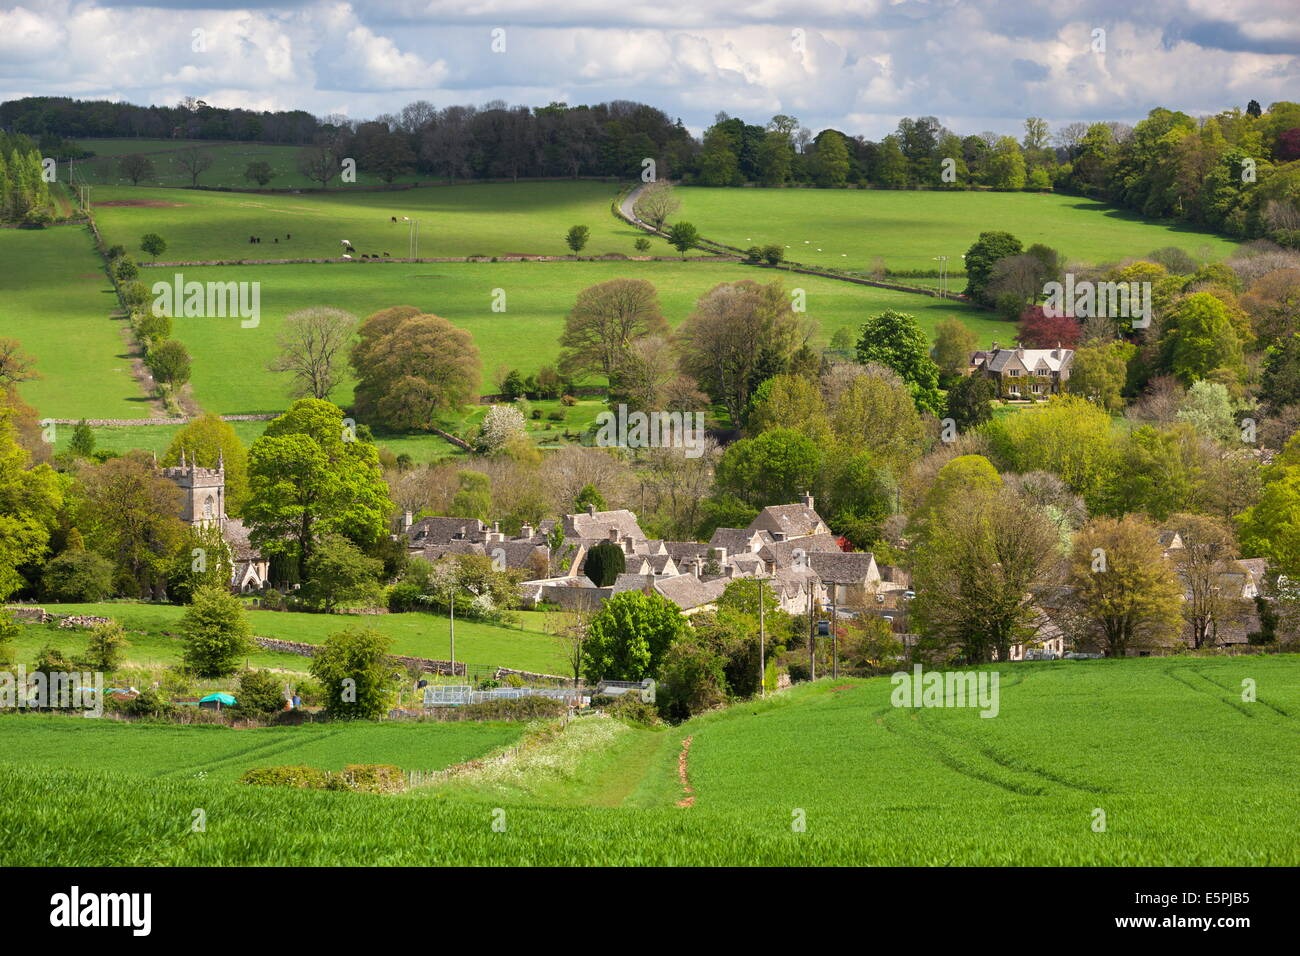 Upper Slaughter, Cotswolds, Gloucestershire, England, United Kingdom, Europe Stock Photo